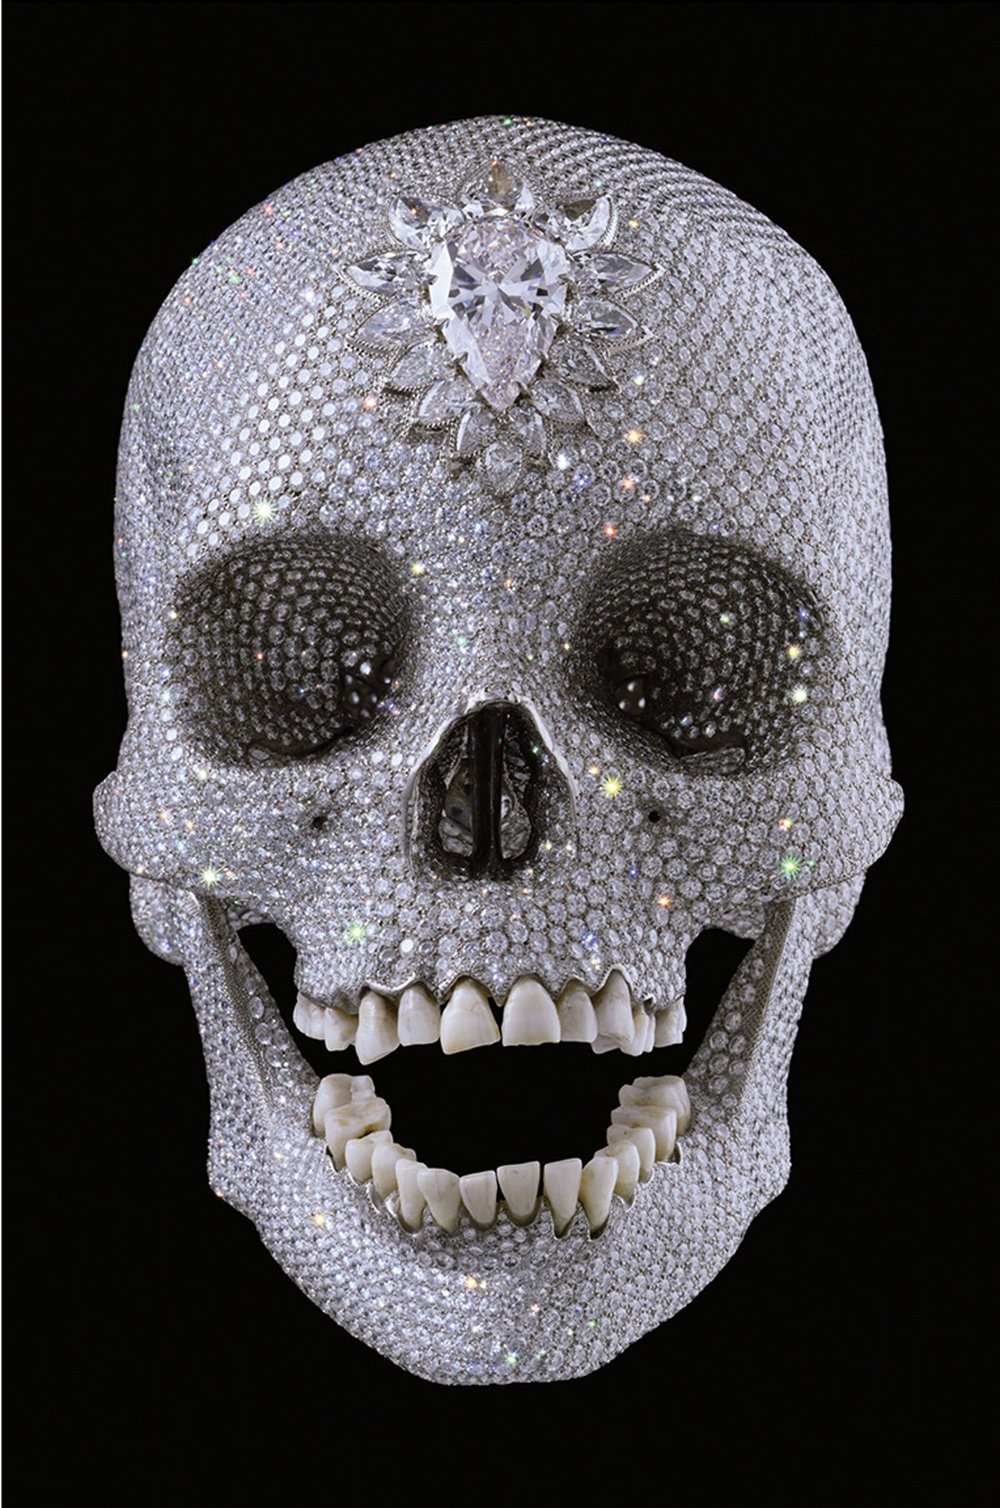 Q, Why is Damian Hirst's diamond encrusted skull, widely considered an object of ultimate desire, now worth much more than the sum of its parts?